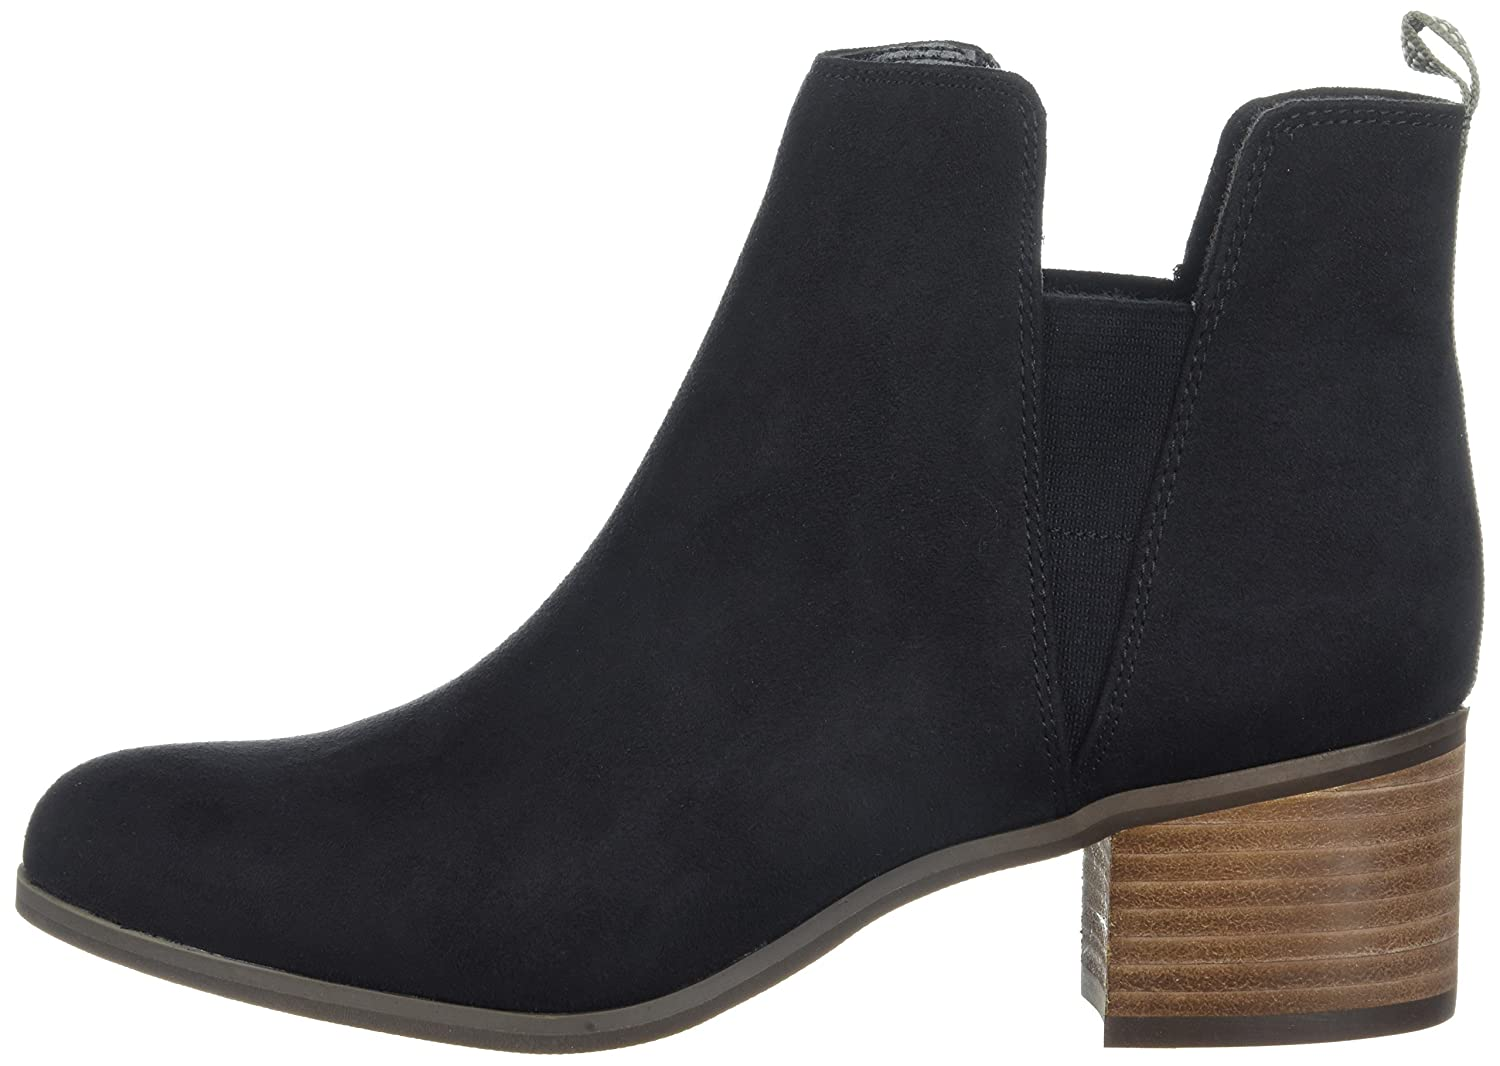 Dr. Scholl's Shoes Shoes Scholl's Women's Addition Ankle Boot B075Y8TF5L Boots 631ee7